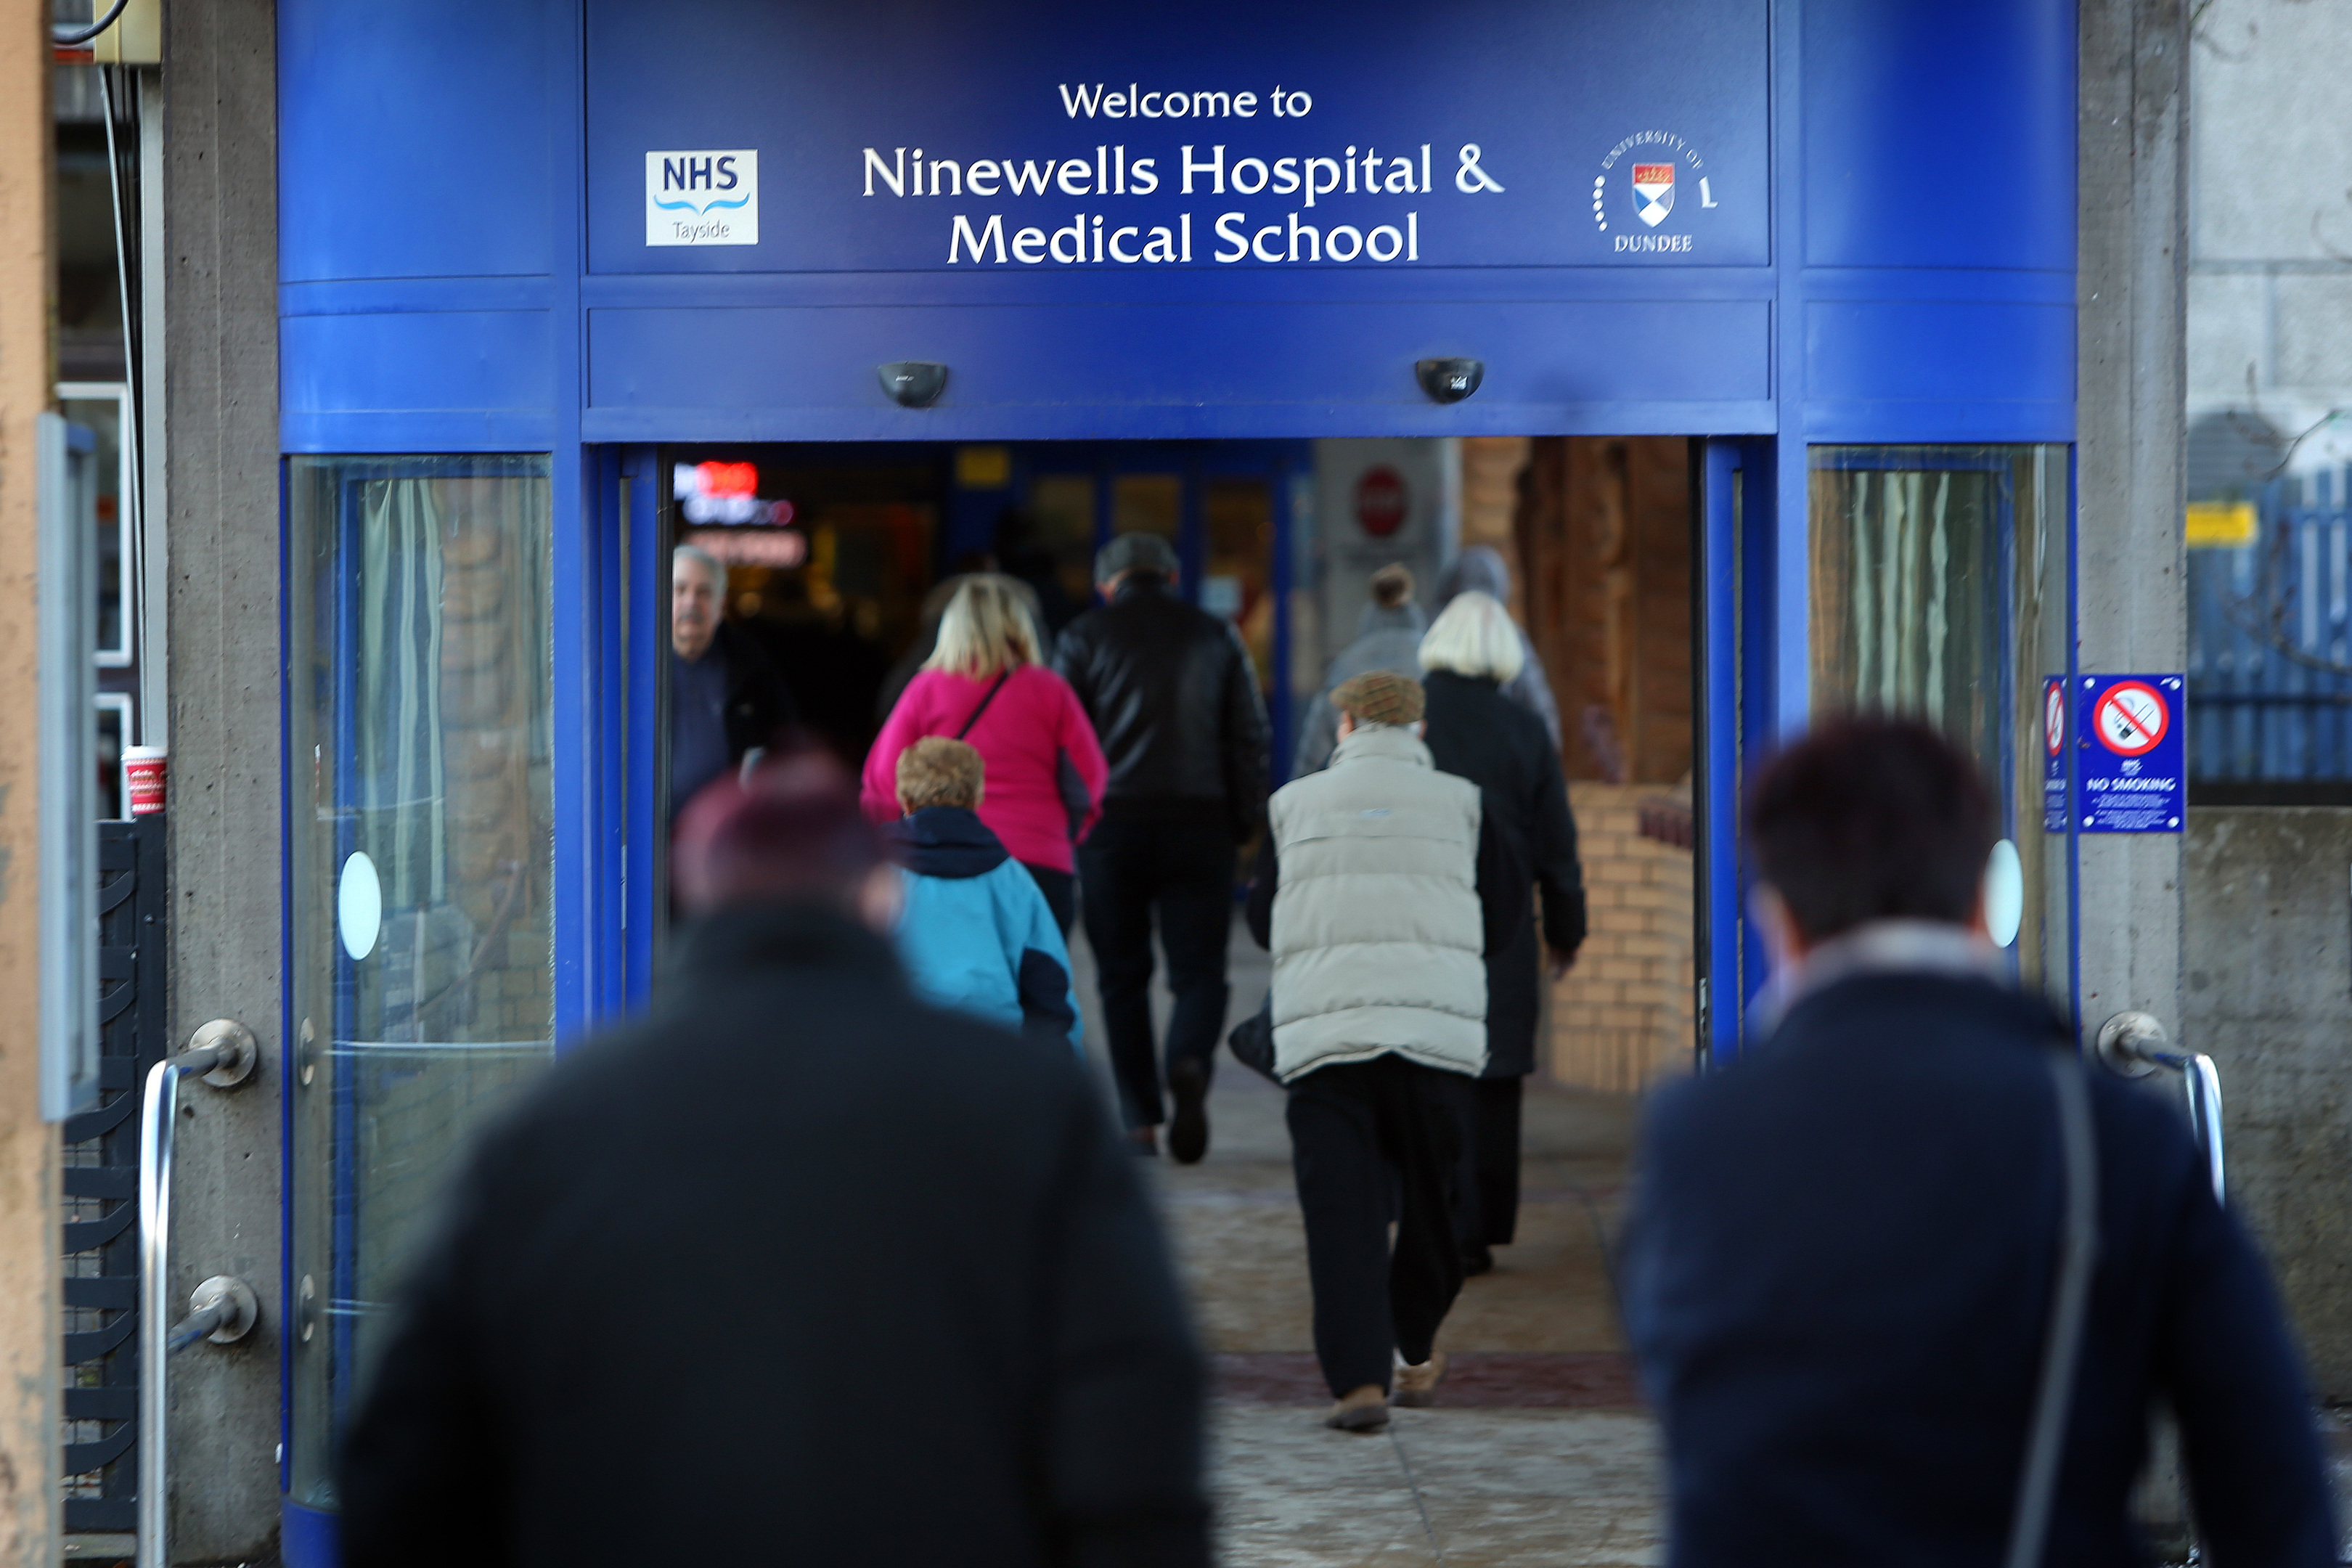 The entrance to Ninewells Hospital, NHS Tayside HQ